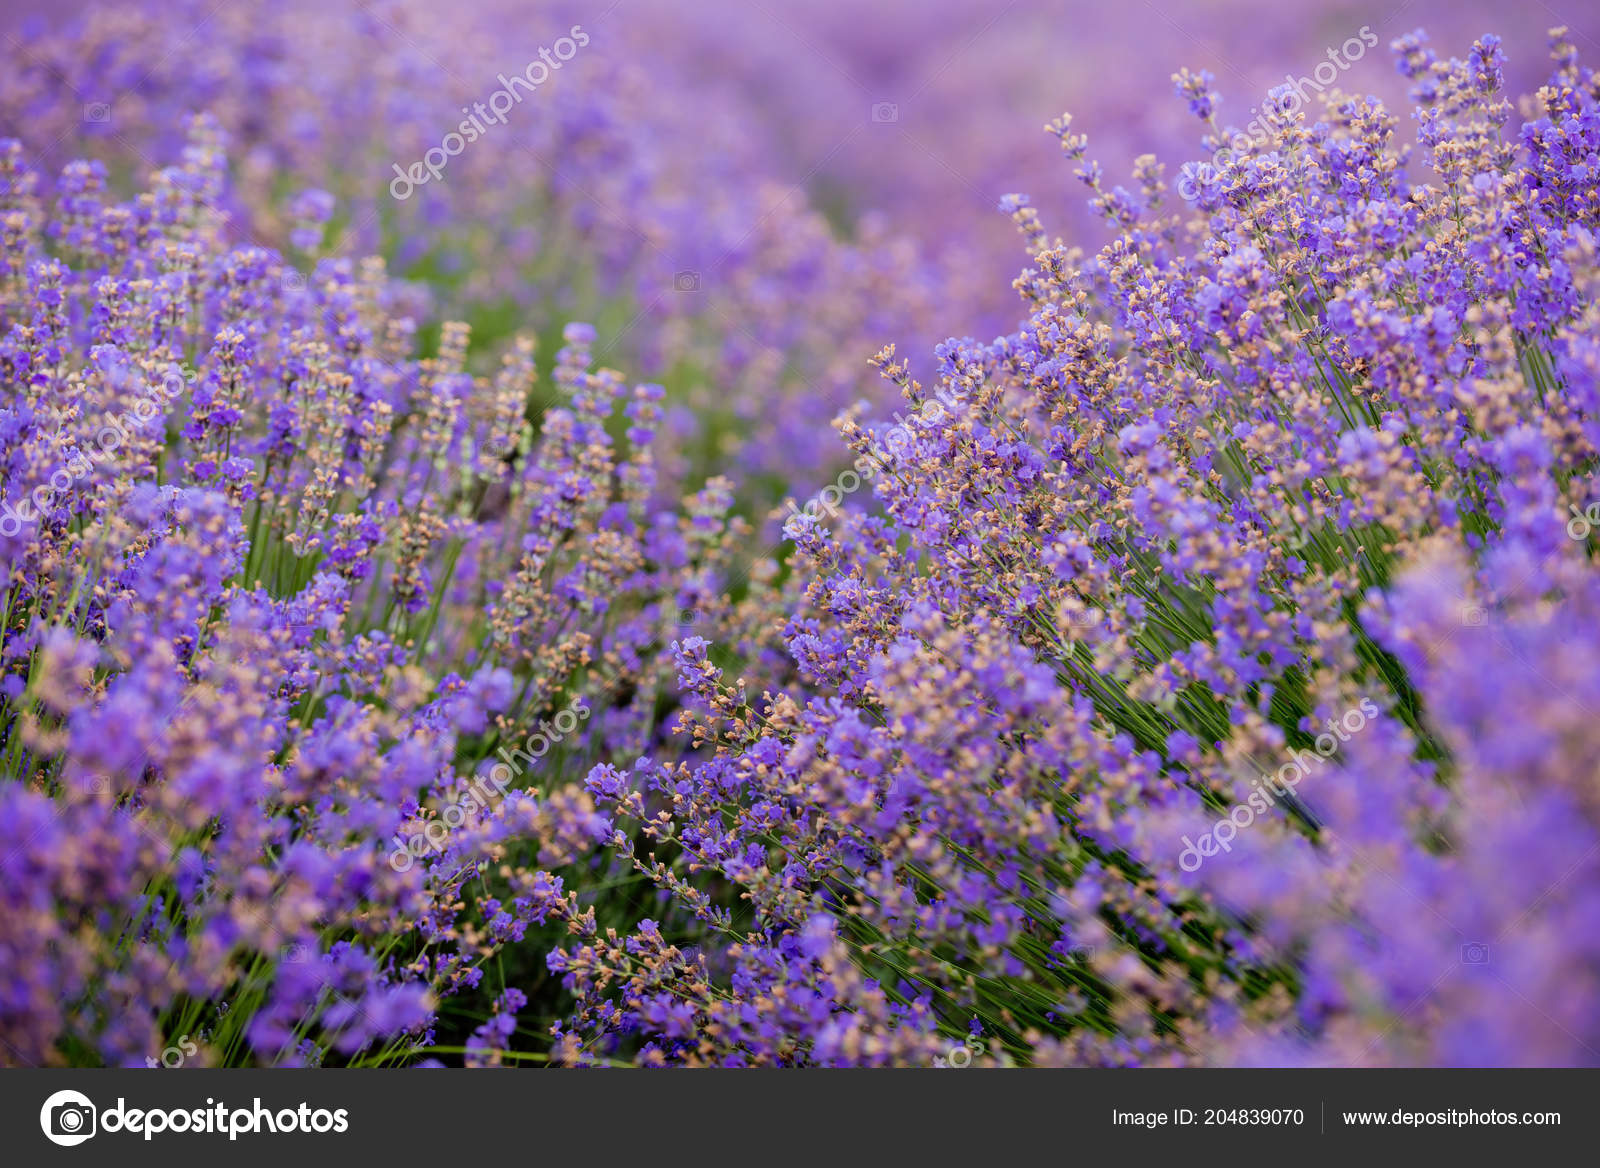 Soft focus flowers beautiful lavender flowers blooming stock photo soft focus flowers beautiful lavender flowers blooming stock photo izmirmasajfo